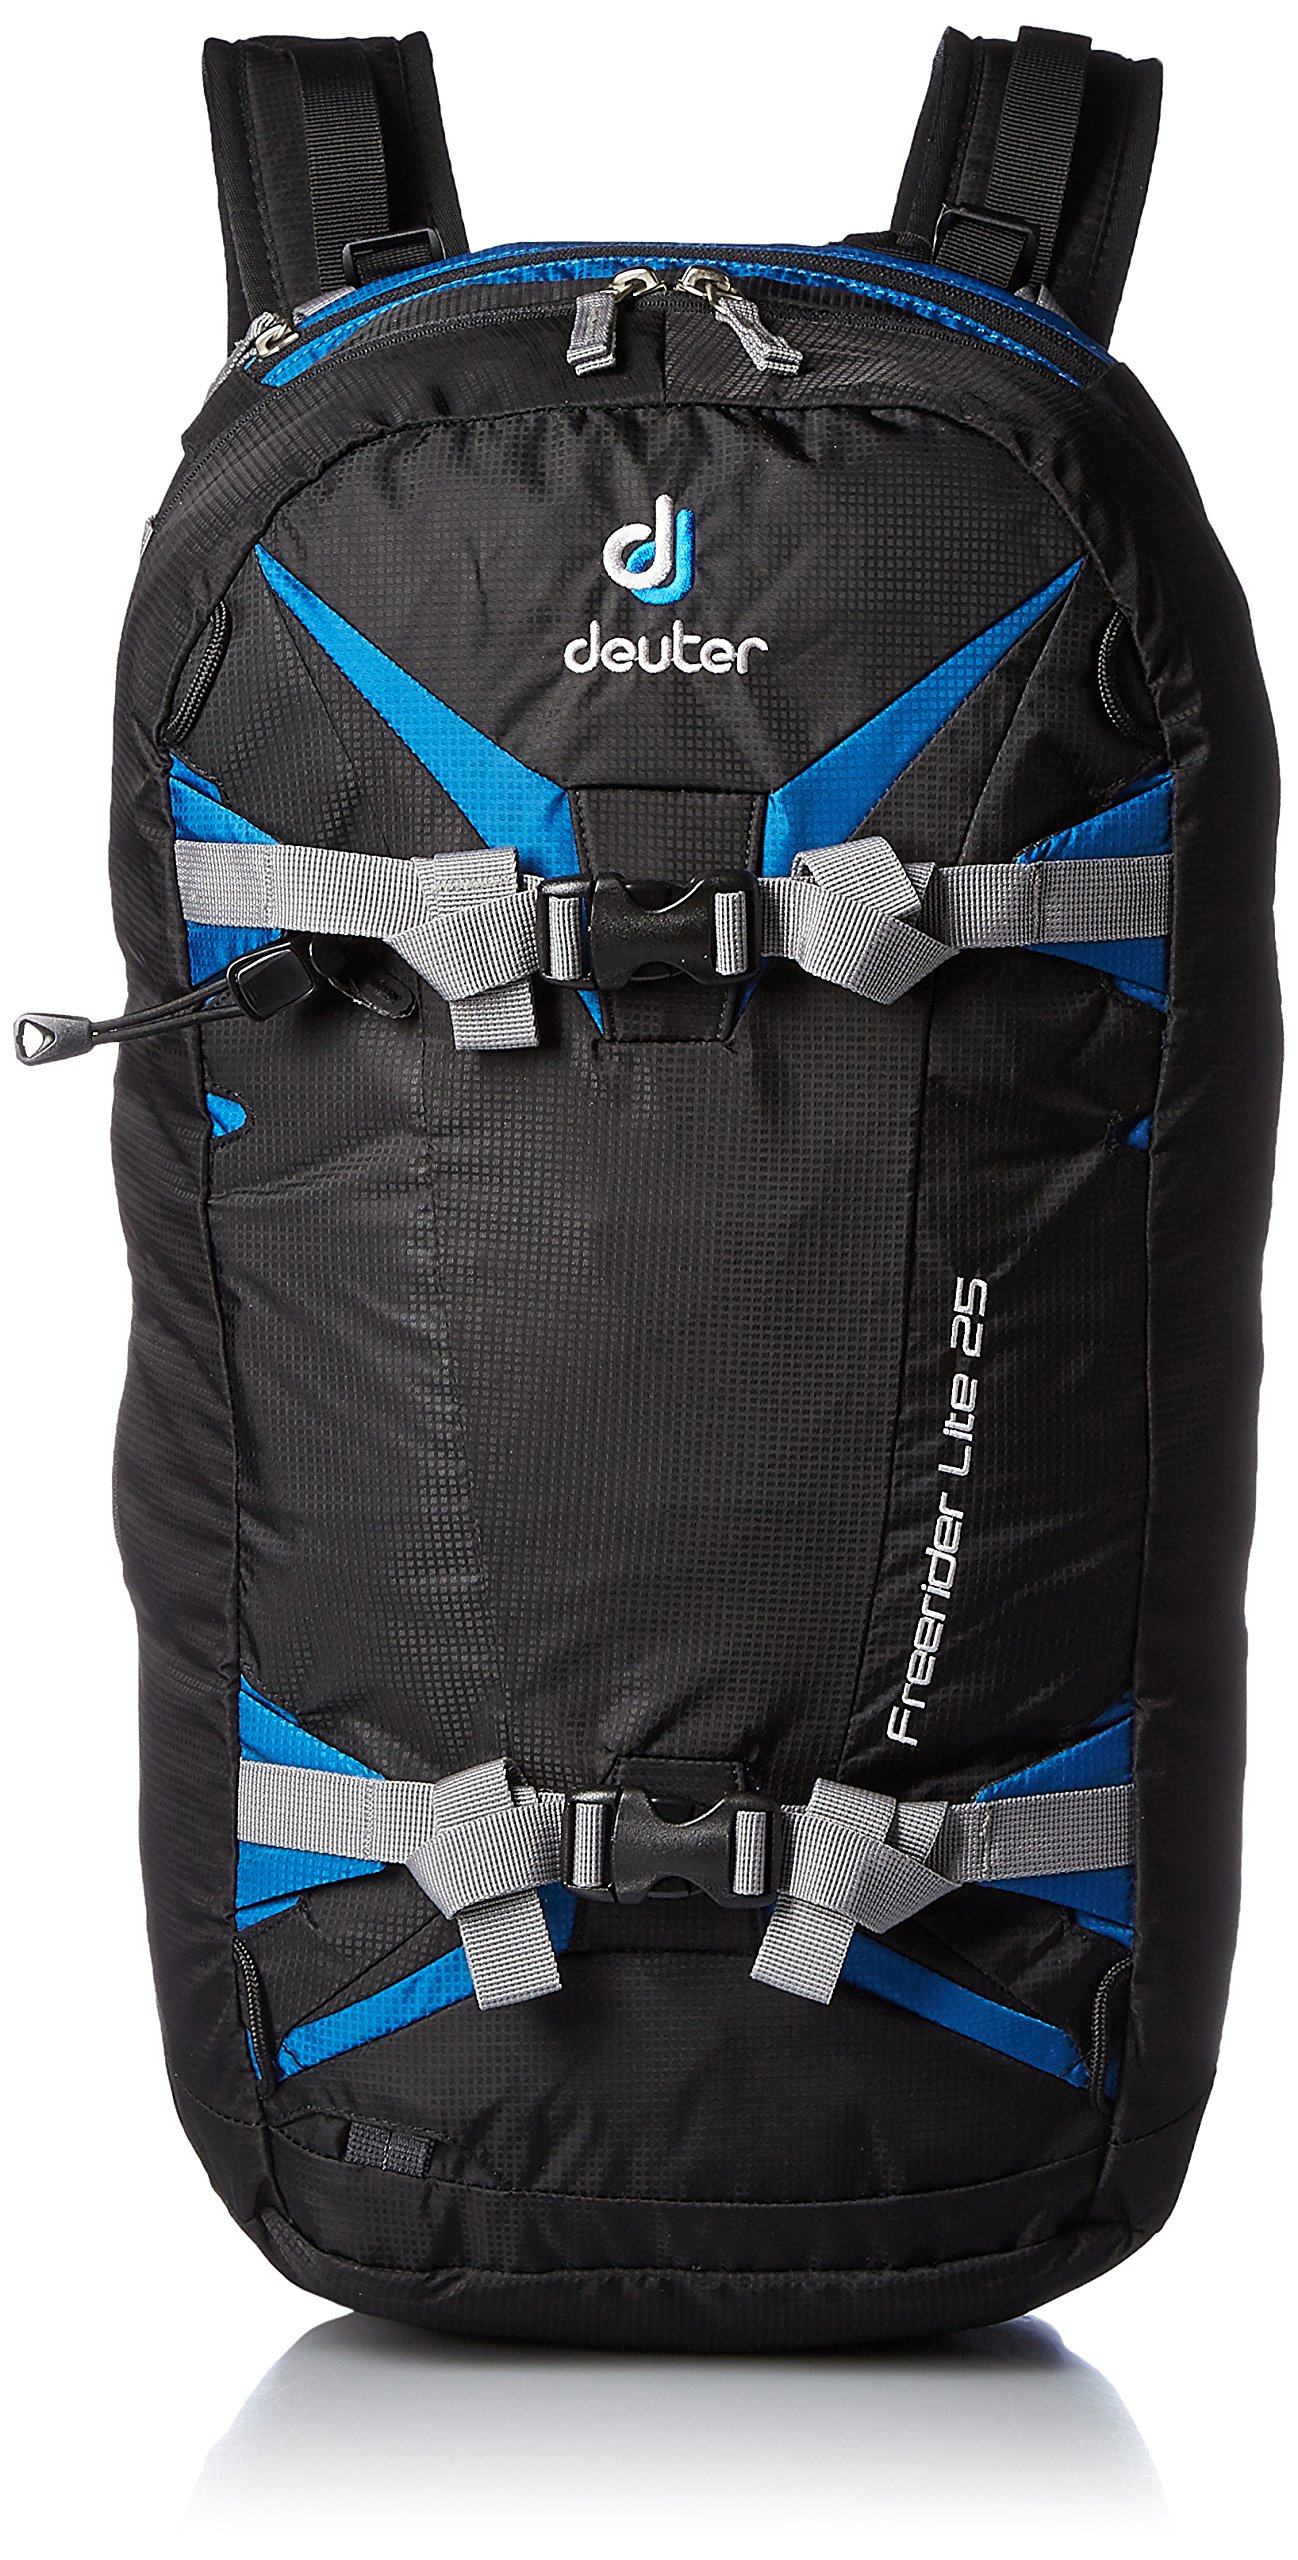 Deuter 330301773030 Black/Bay Freerider Lite 25 - Perfect for Hiking, Biking, Hunting, Off-road and Motorcycling by Deuter